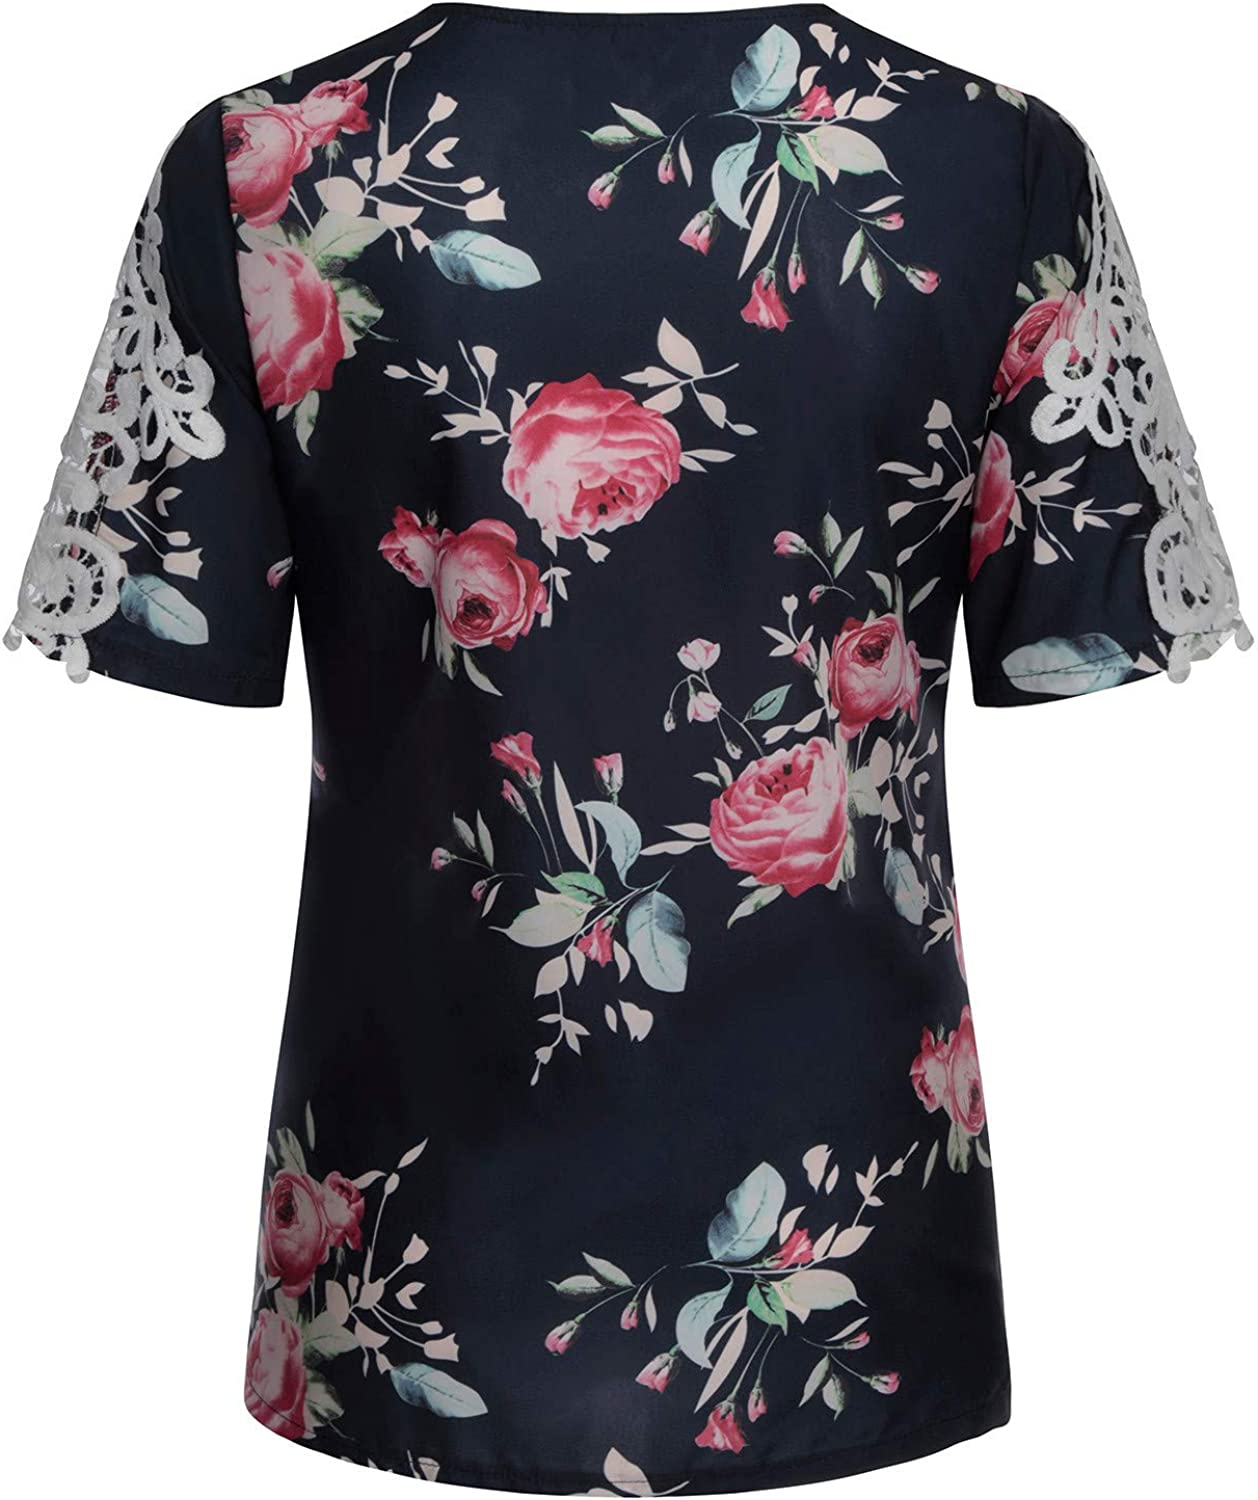 Womens Summer Tops,Women Casual Fashion Printed Zipper Shirts Strap Cold Shoulder Tops Short Sleeved V-Neck Tee